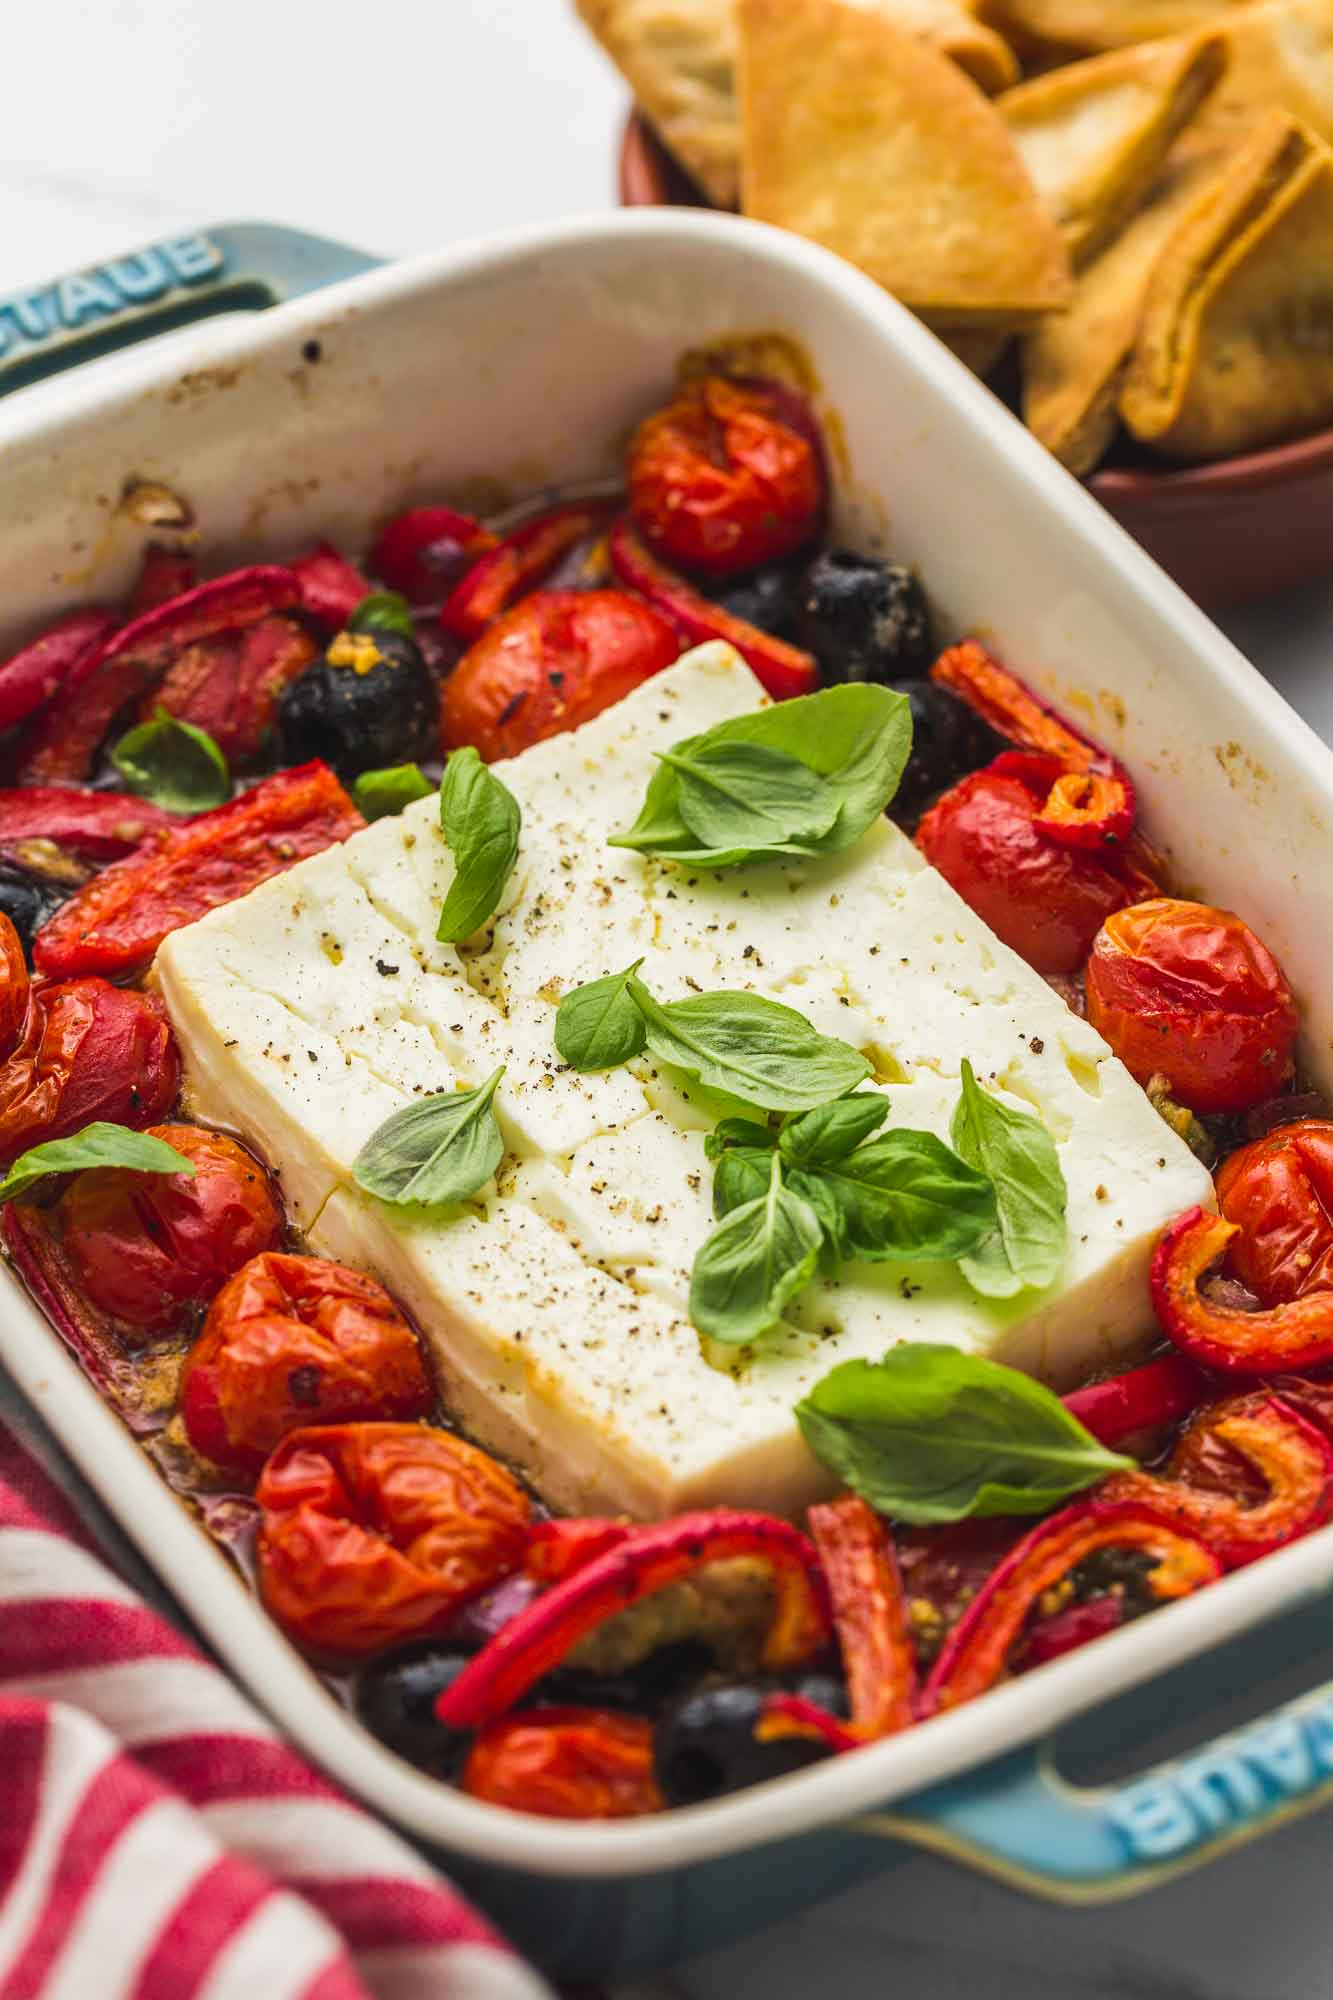 Baked feta dip with roasted vegetables in a blue Staub baking dish, garnished with fresh basil leaves.